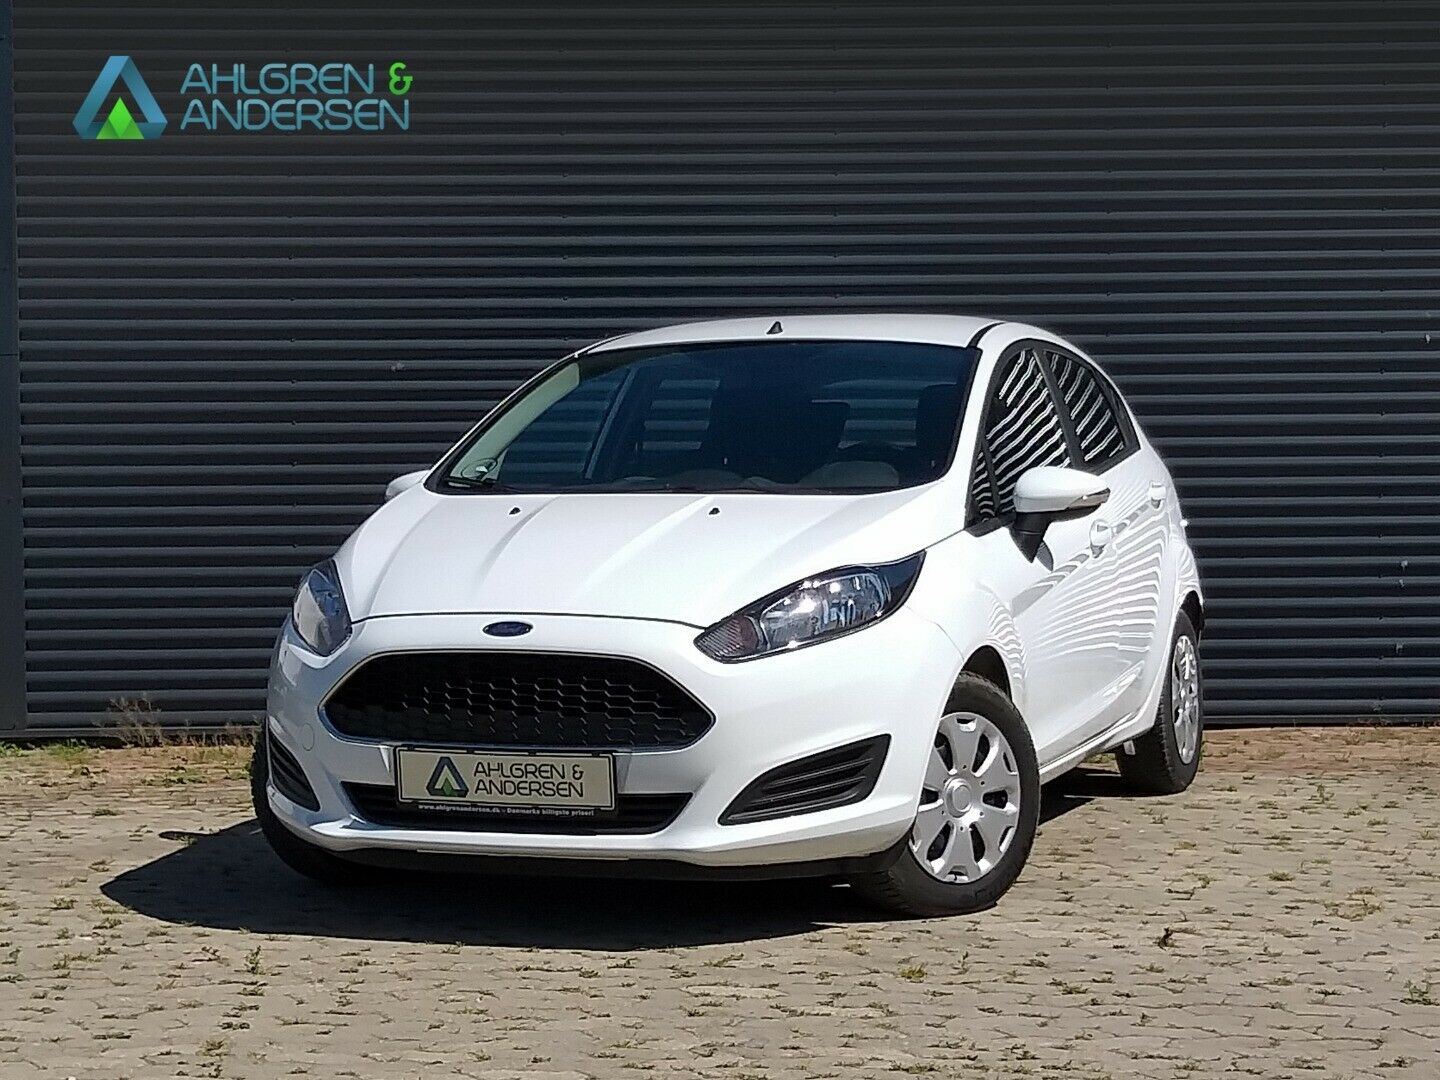 Ford Fiesta 1,5 TDCi 95 Trend ECO 5d